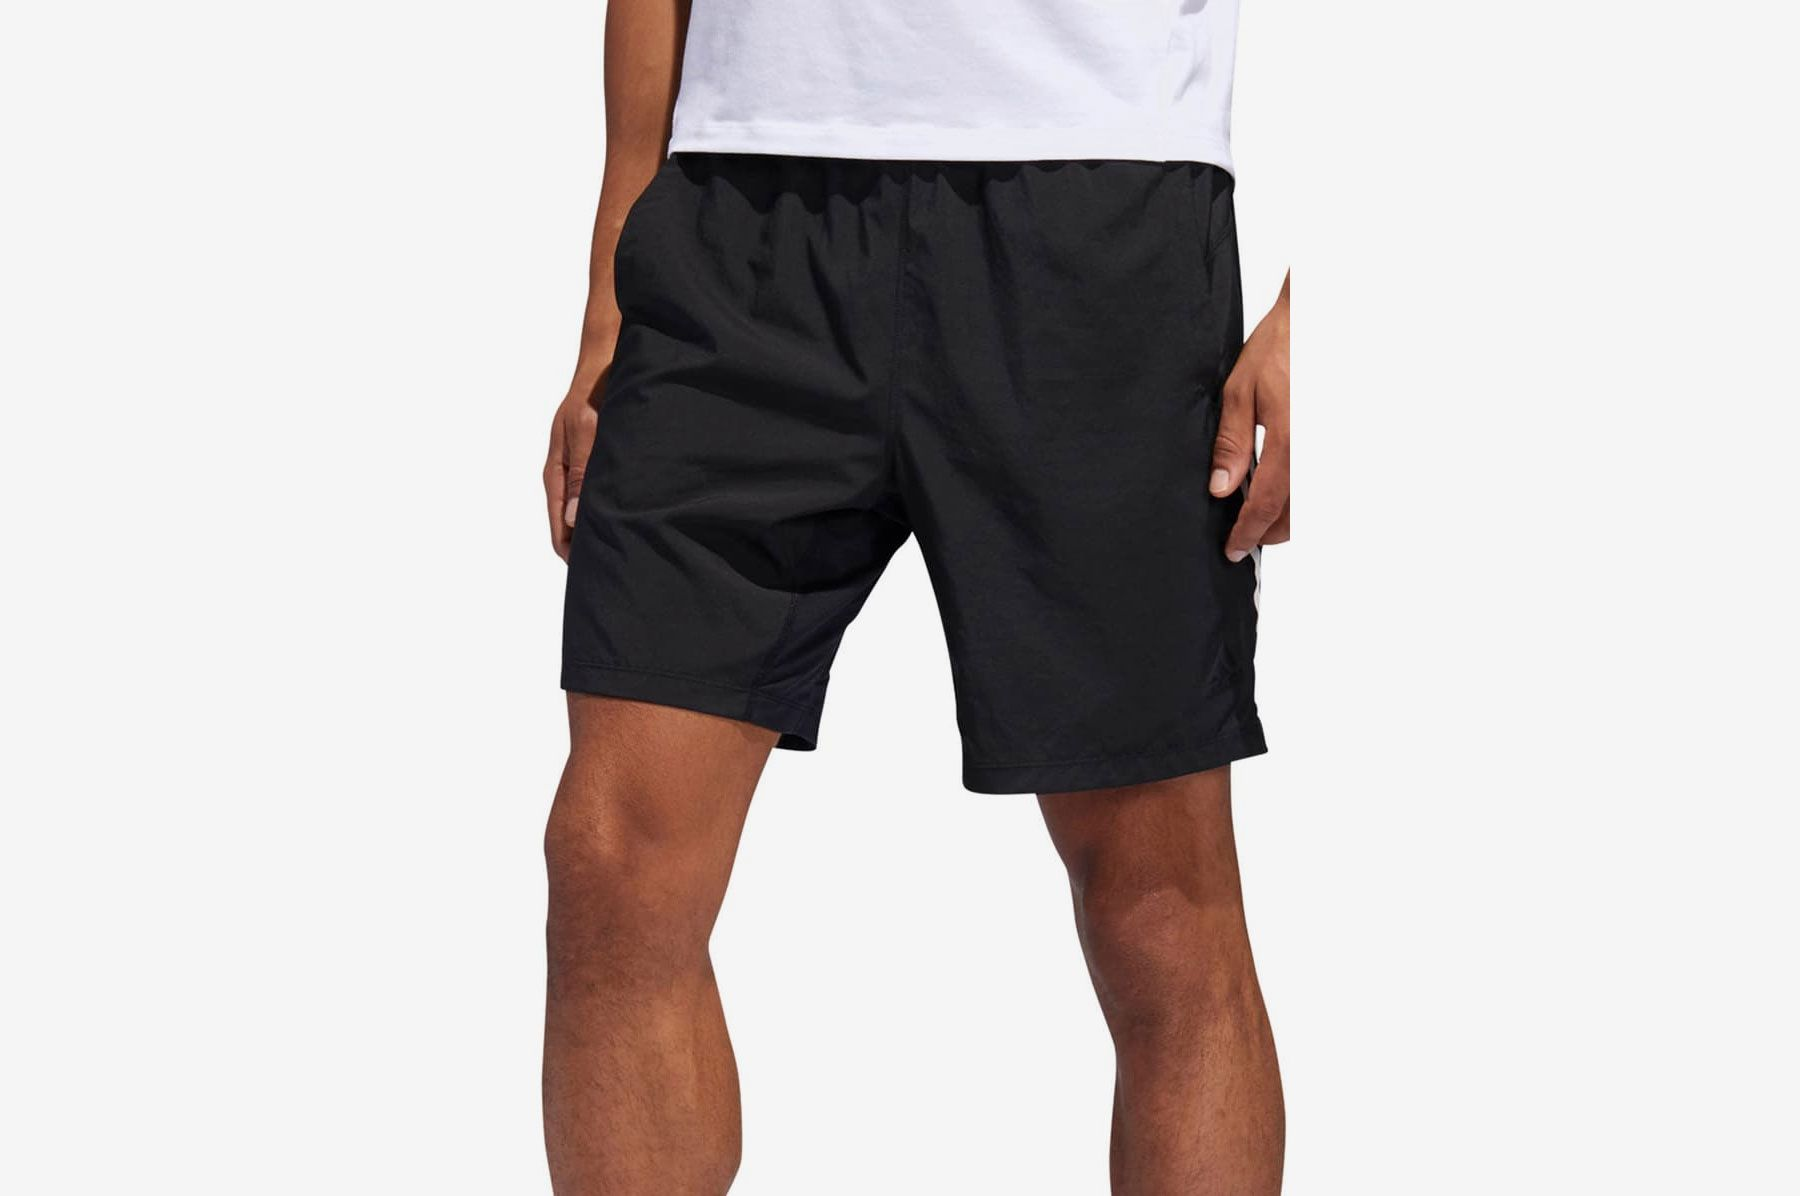 Adidas 4K Tech Athletic Shorts